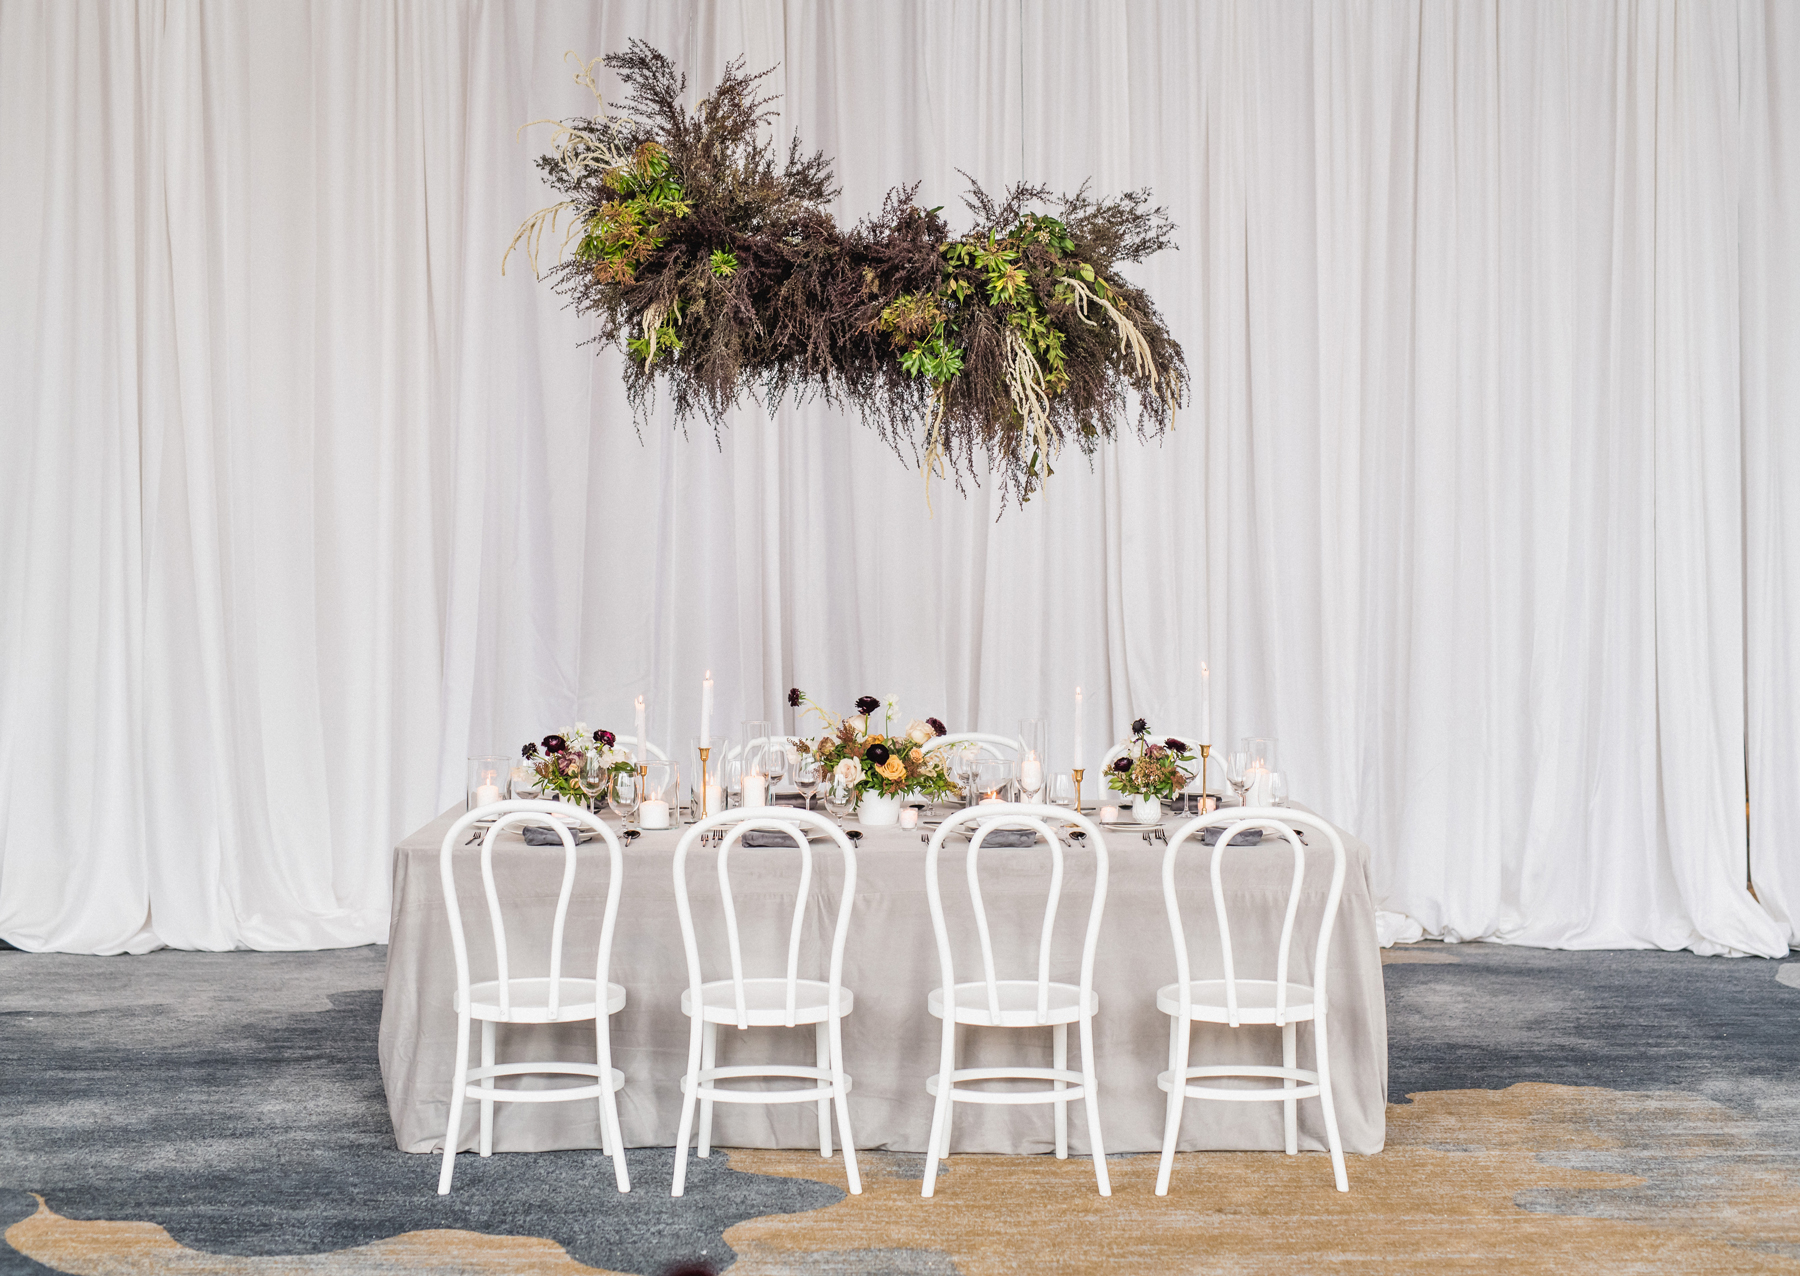 Punchy Gray reception decor